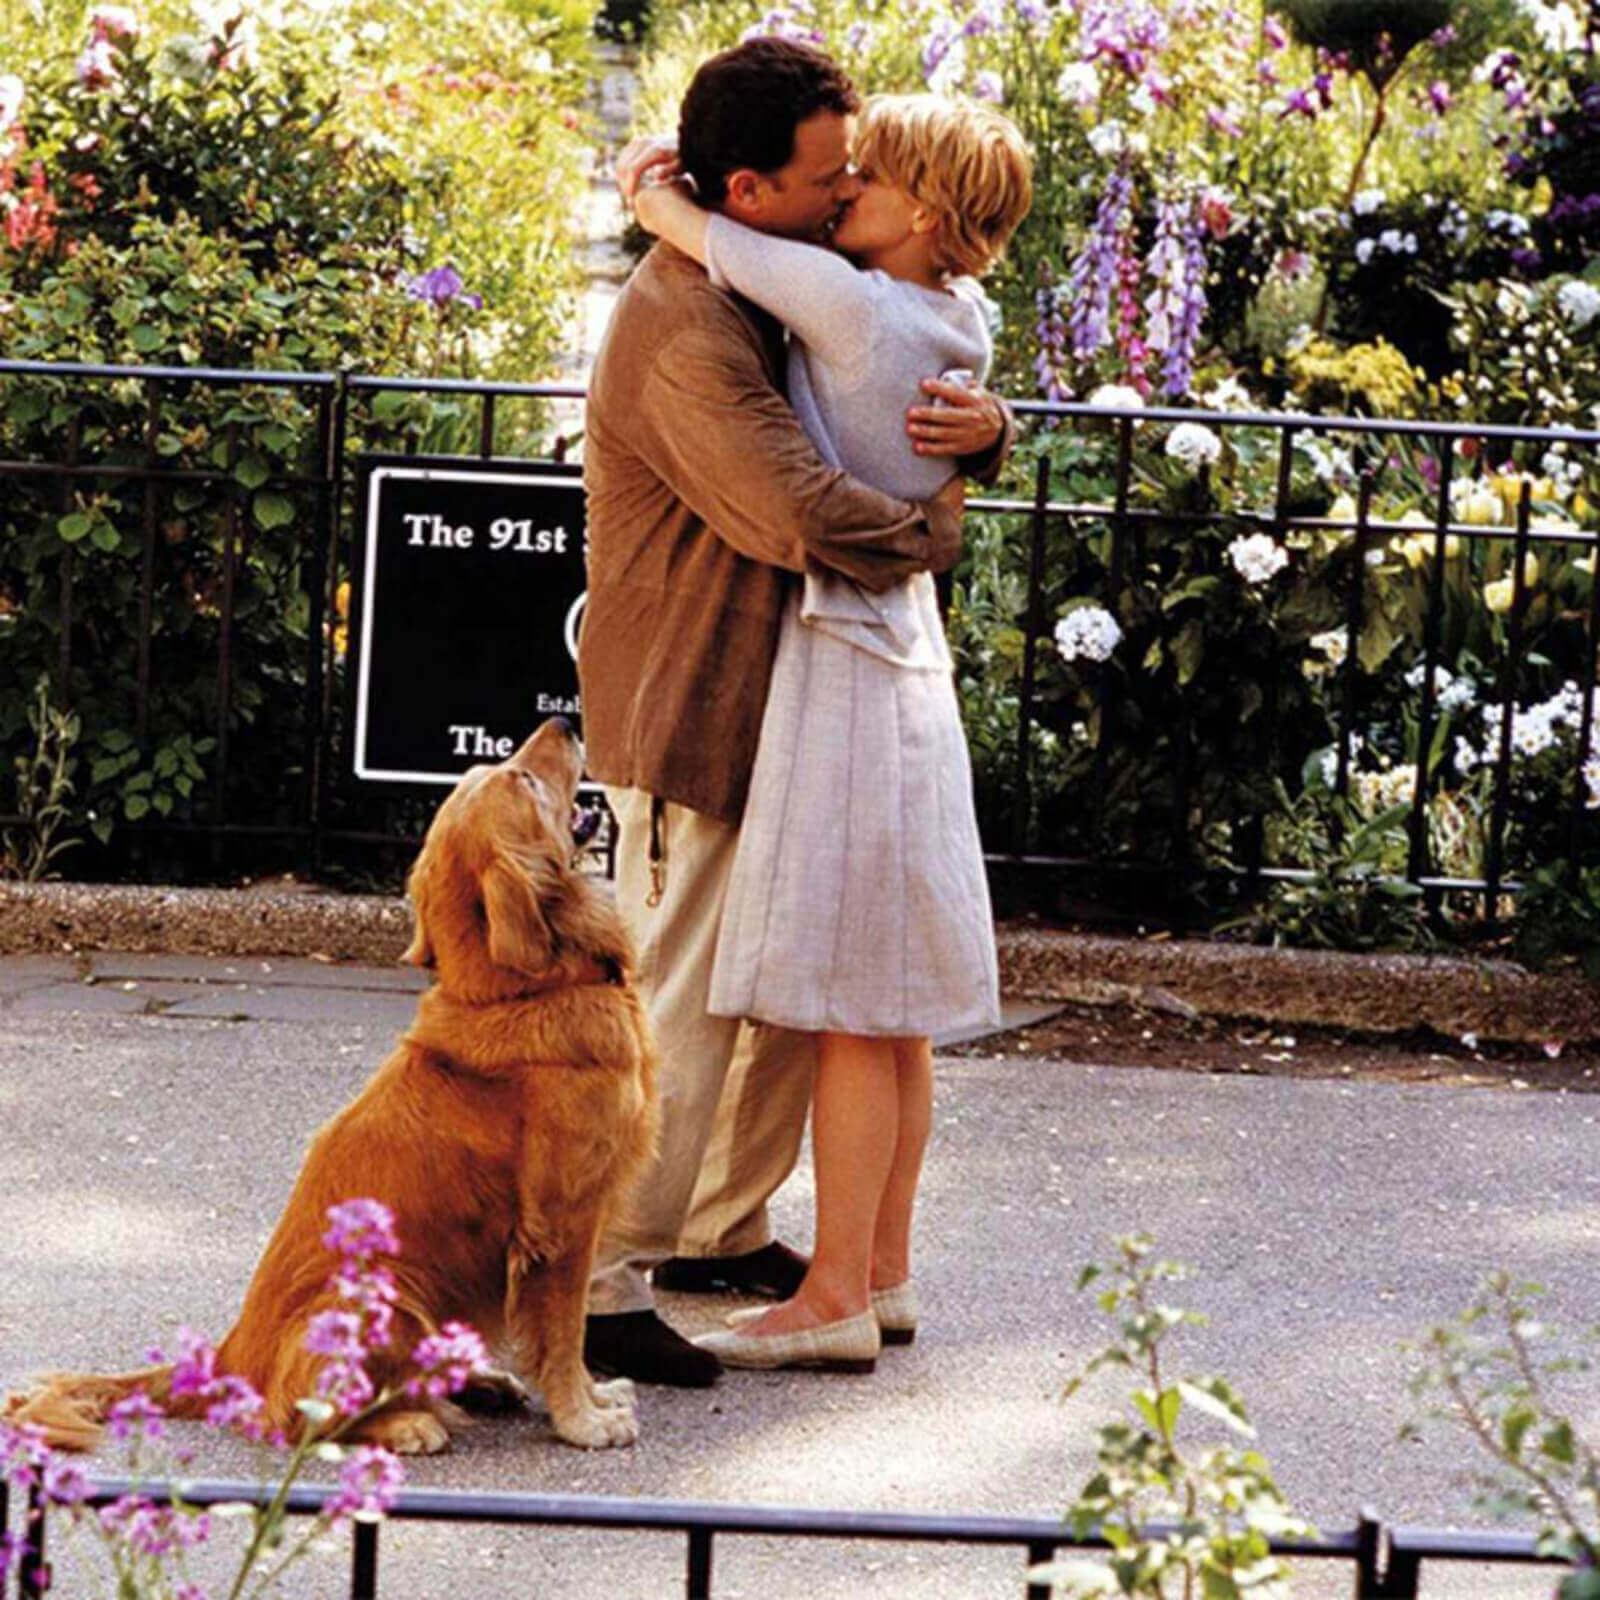 A photo of Meg Ryan and Tom Hanks in Central Park, kissing and being surrounded by beautiful flowers. His dog is watching.